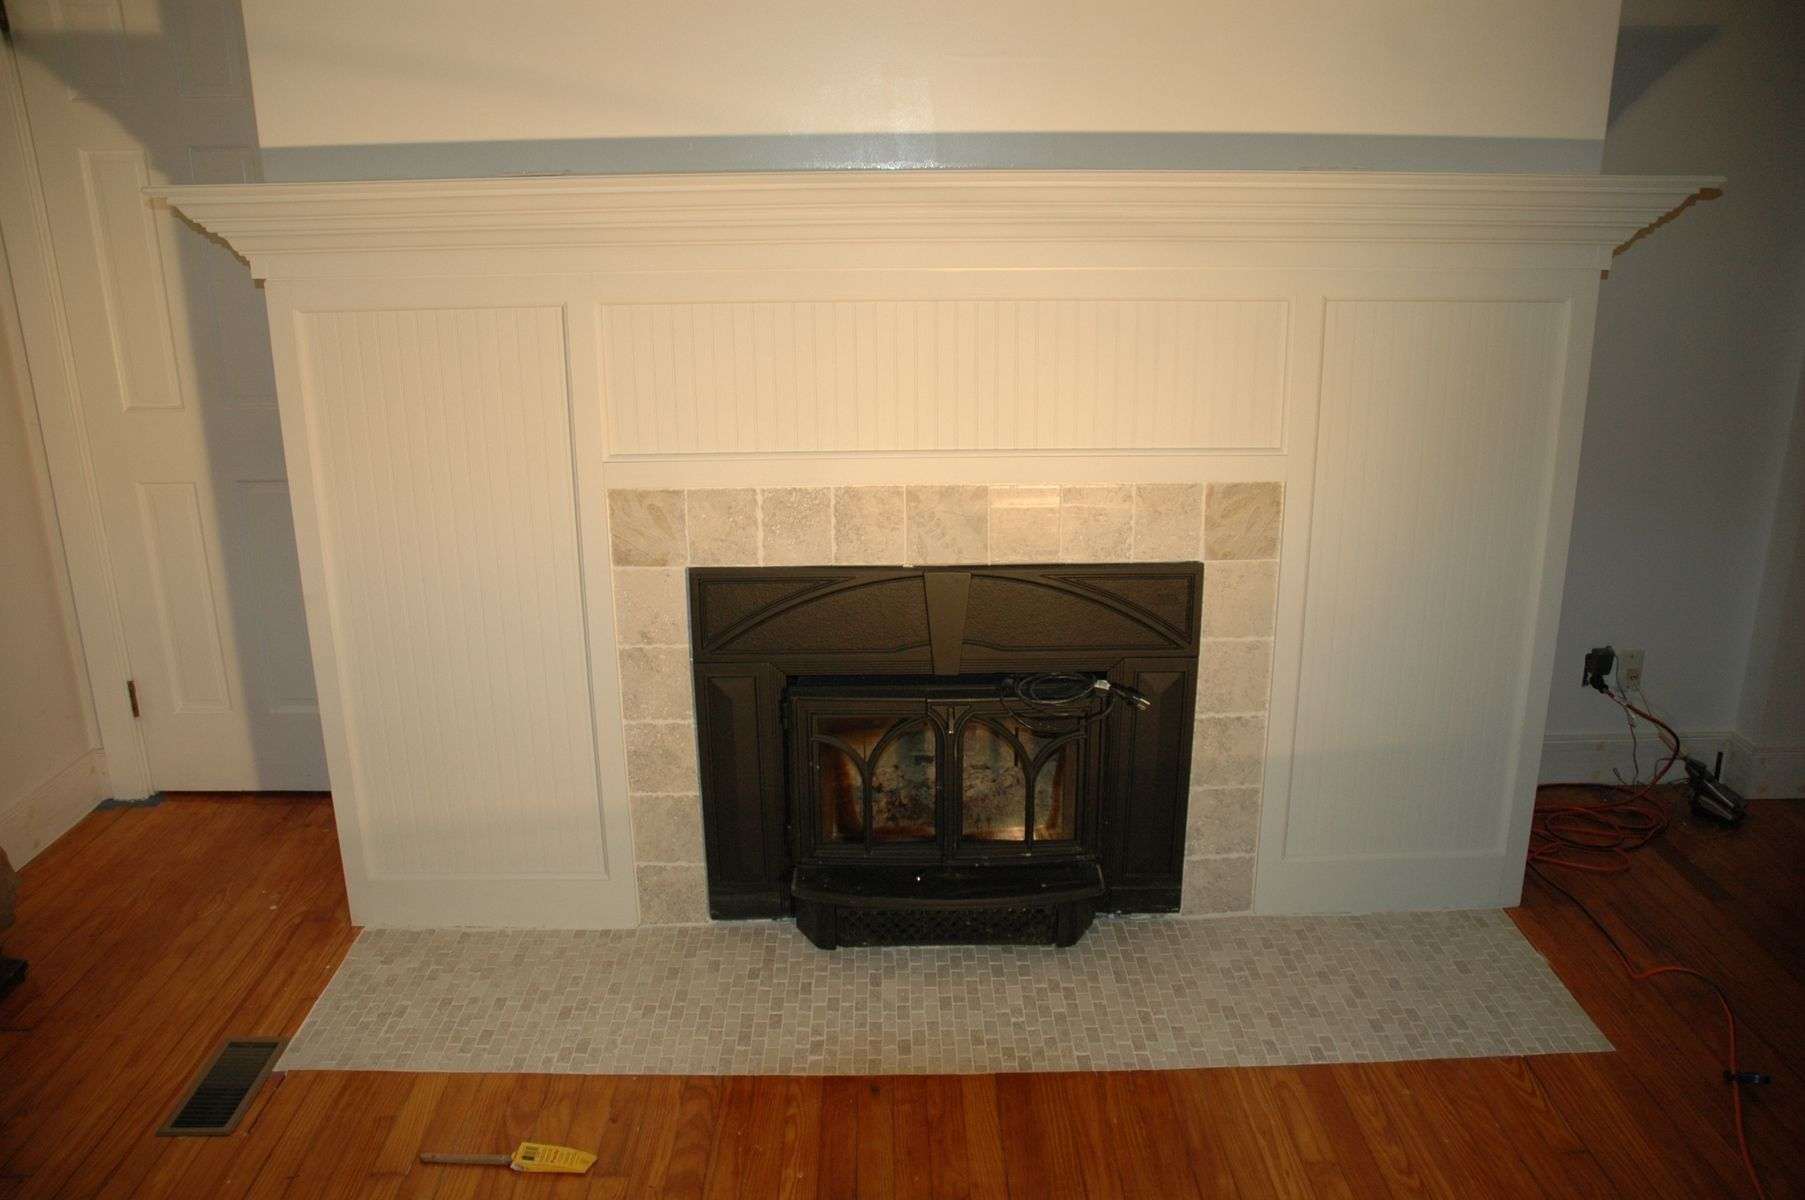 Fireplace Design Dimensions Handmade Custom Fireplace Surround & Tile Remodel By